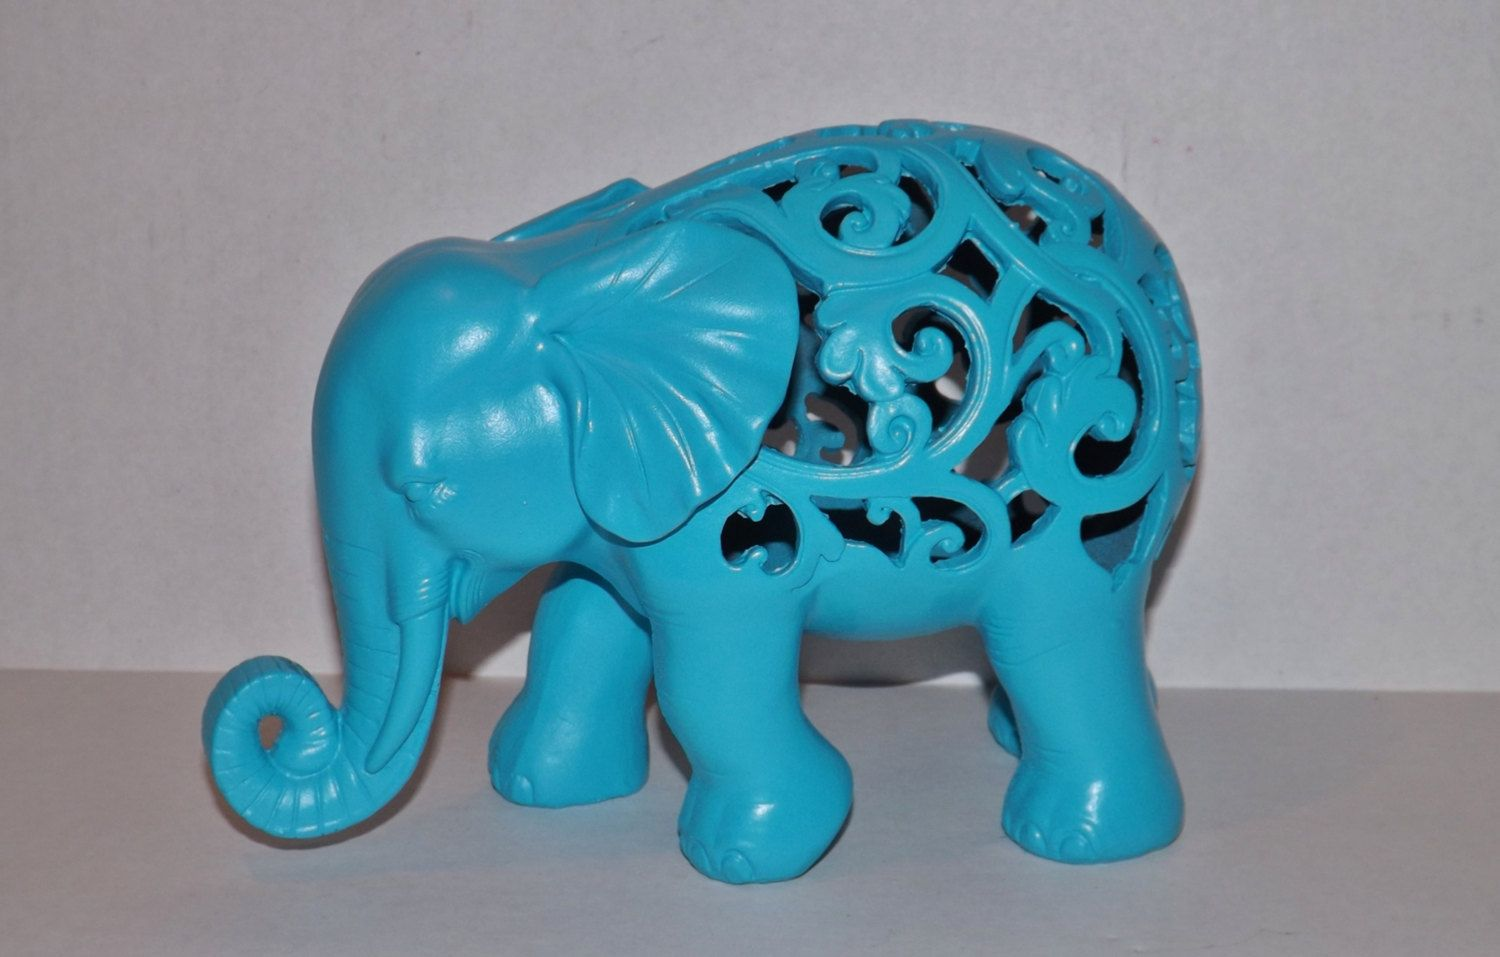 Animal Figurines Home Decor Elephant Turquoise Blue Elephant Statue Figurine